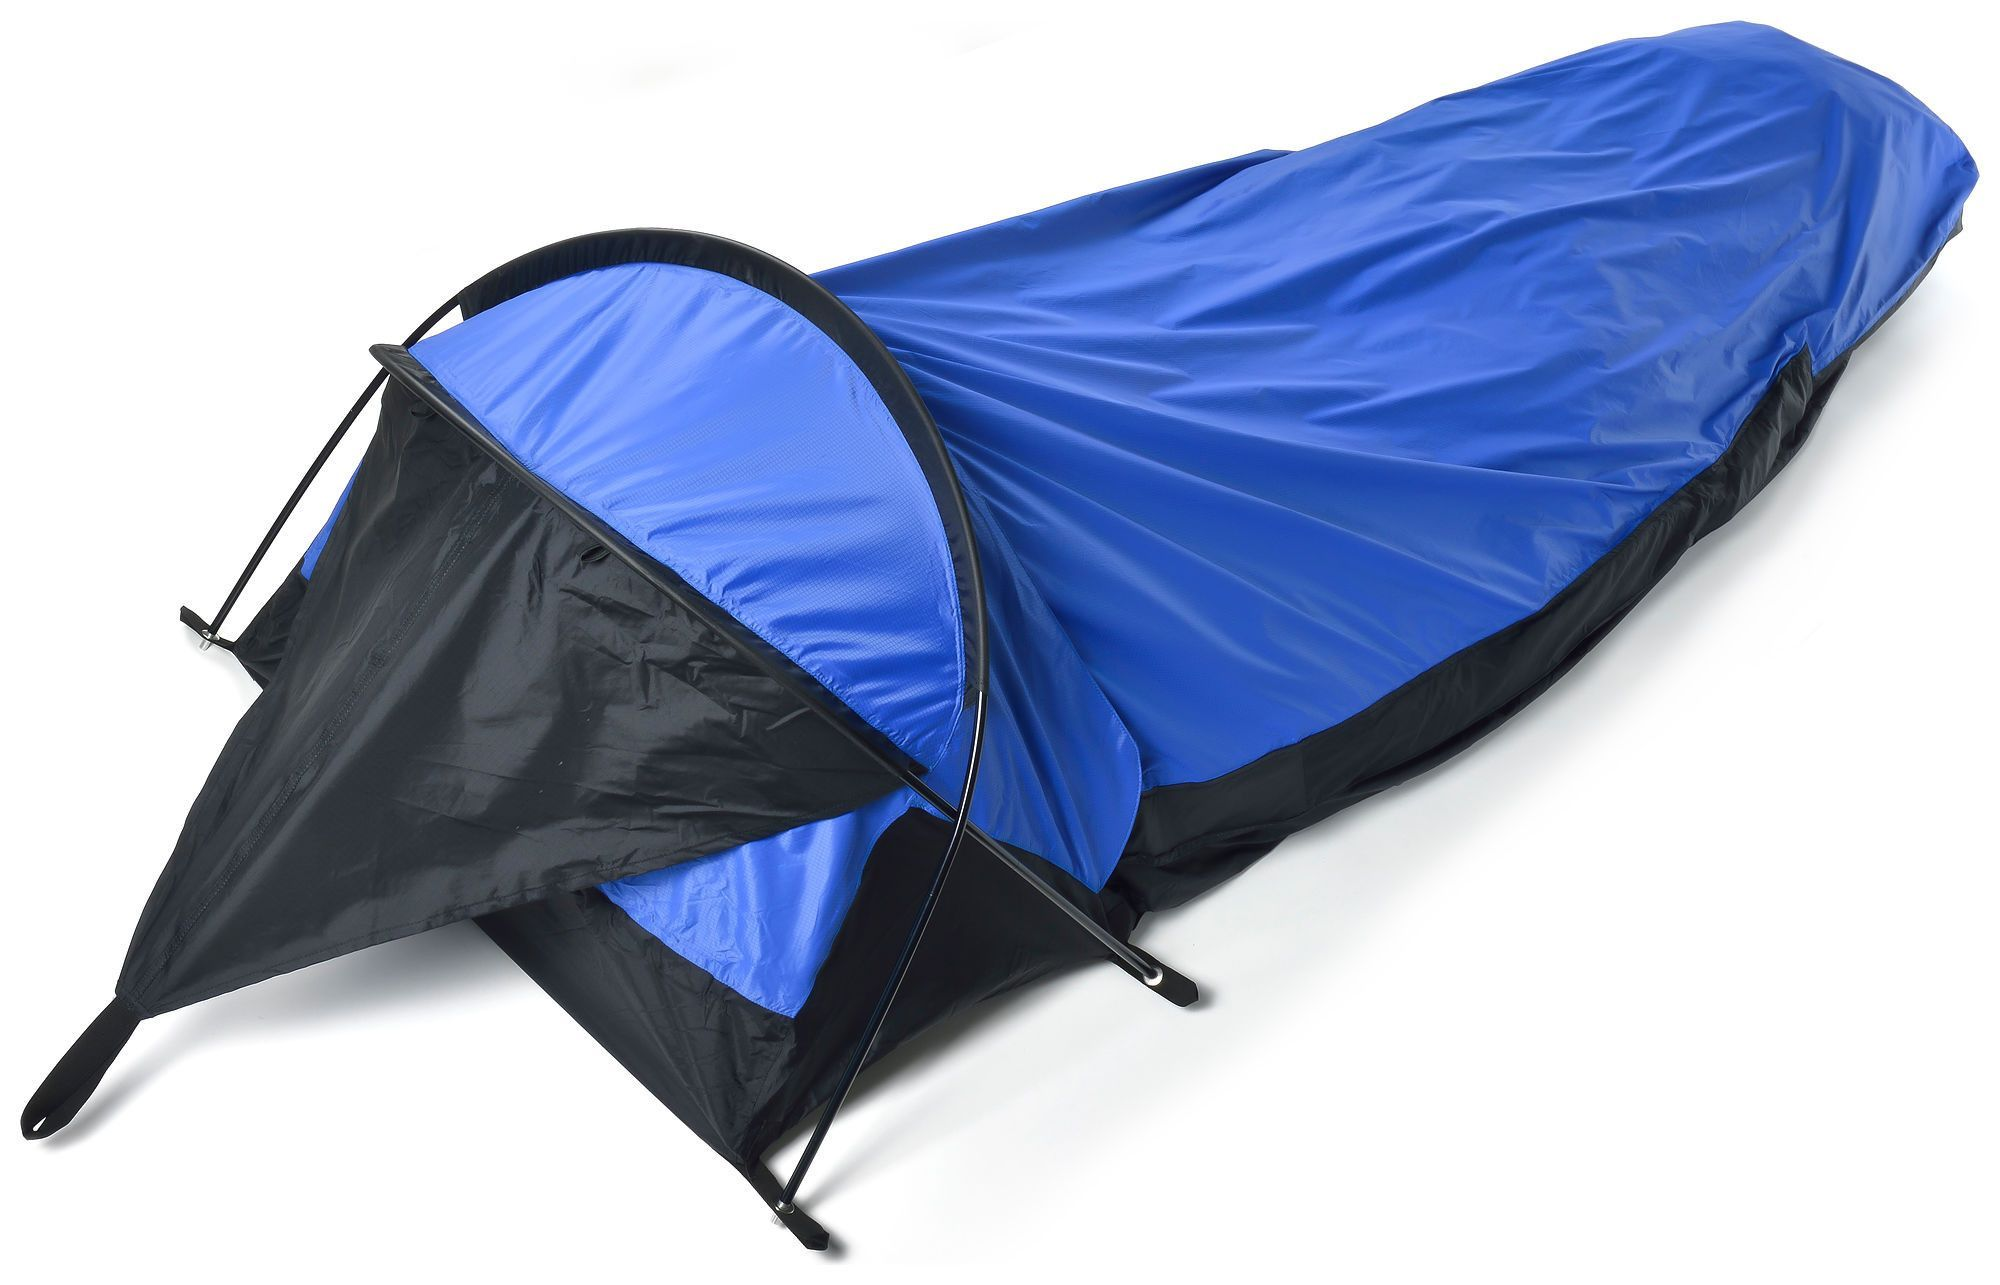 Chinook Summit Bivy Sack System